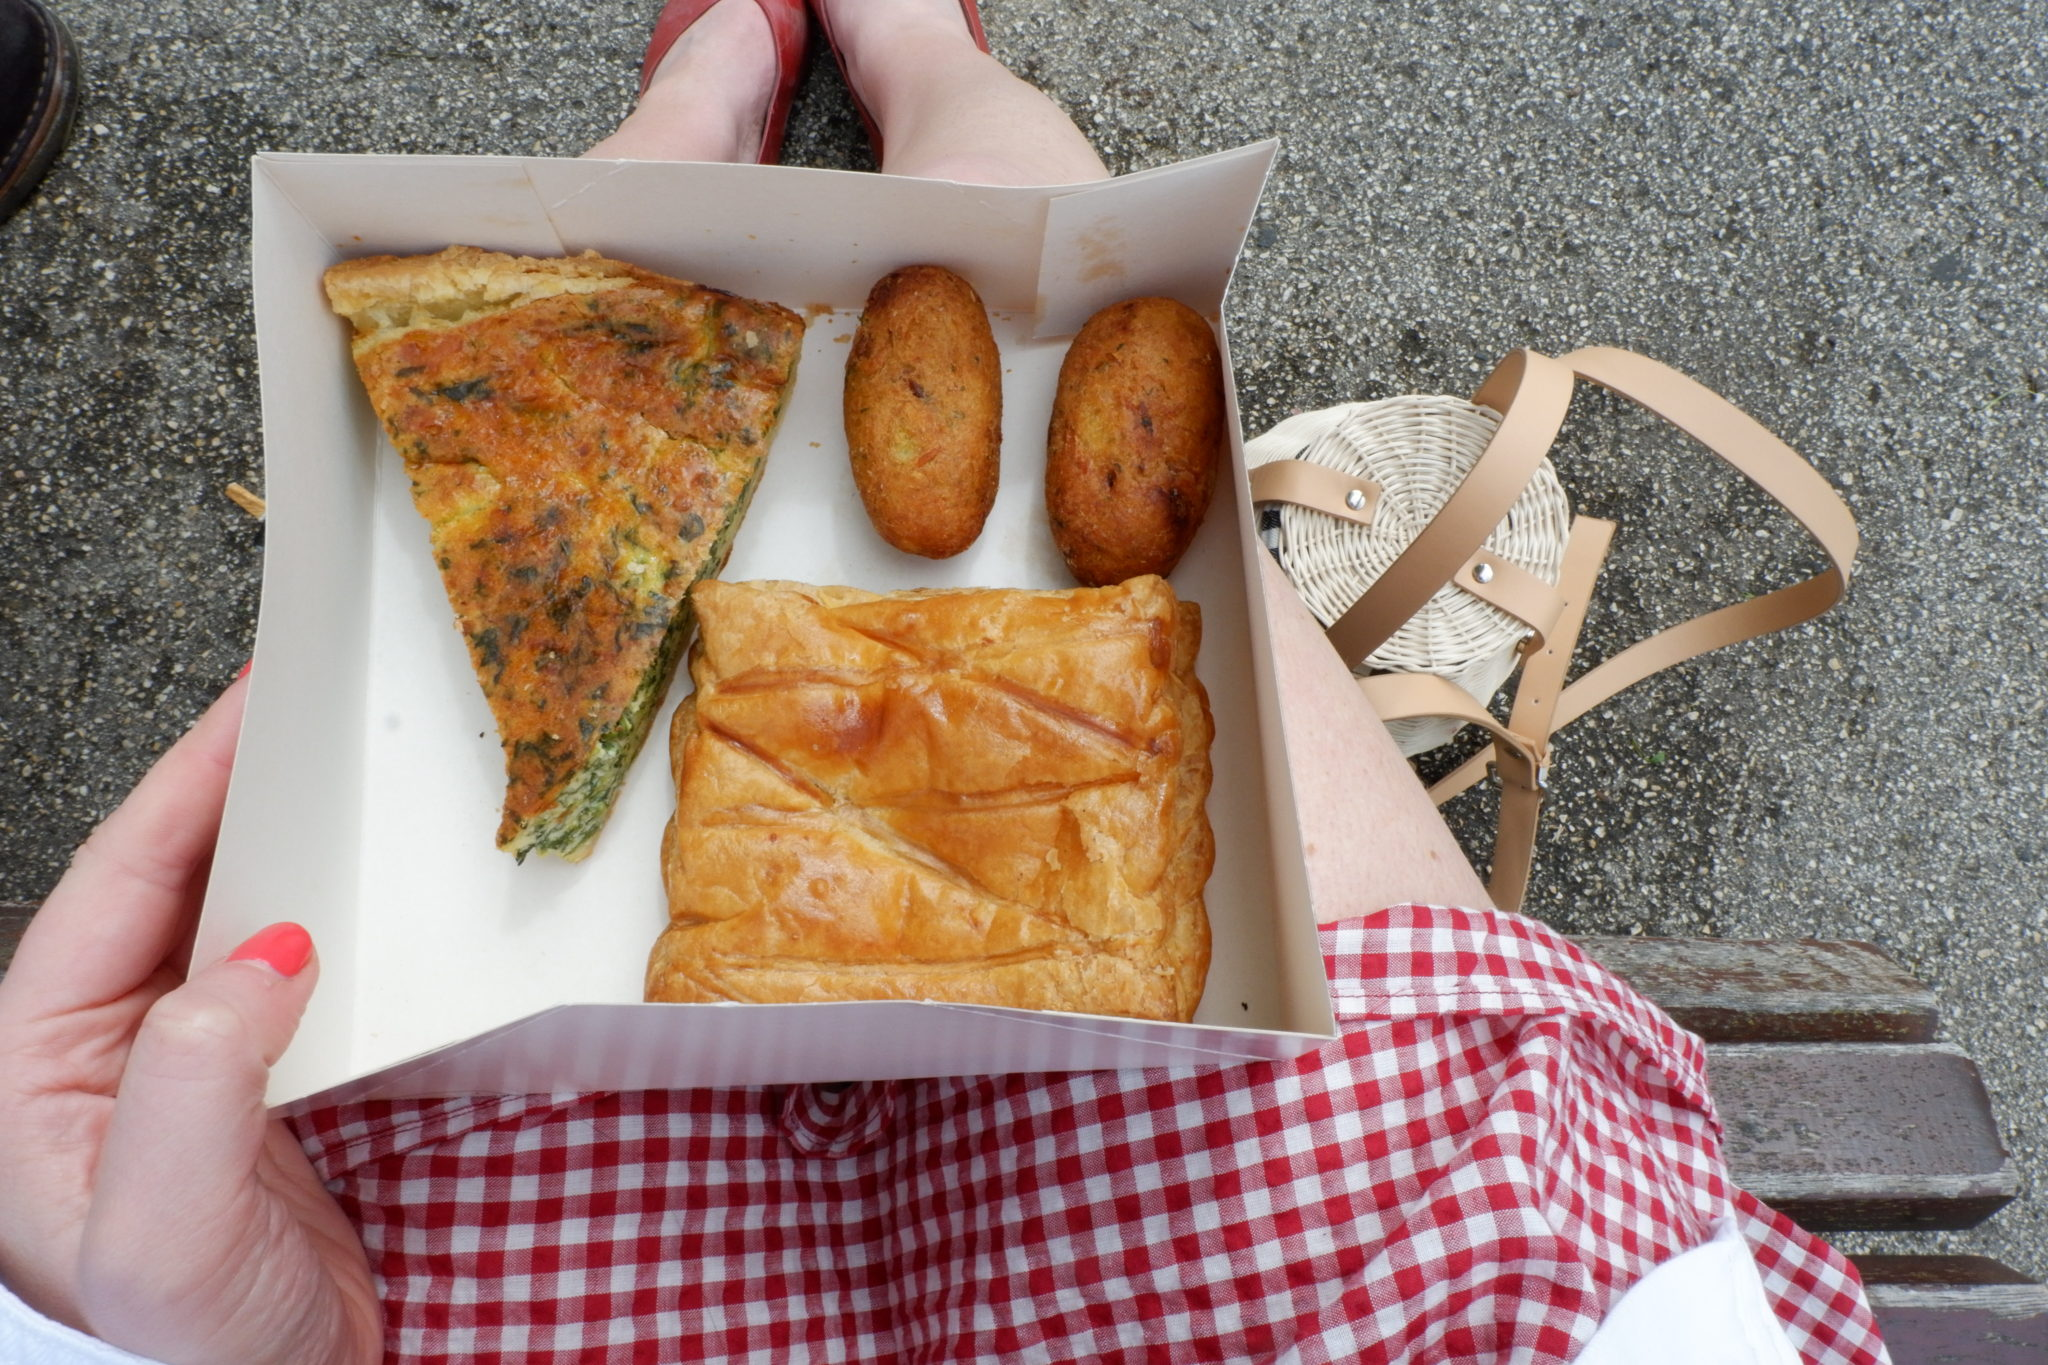 Selection box, Pasteis de Belém <br>(Cod Croquets, Spinach Quiche, Cheese Pasty)